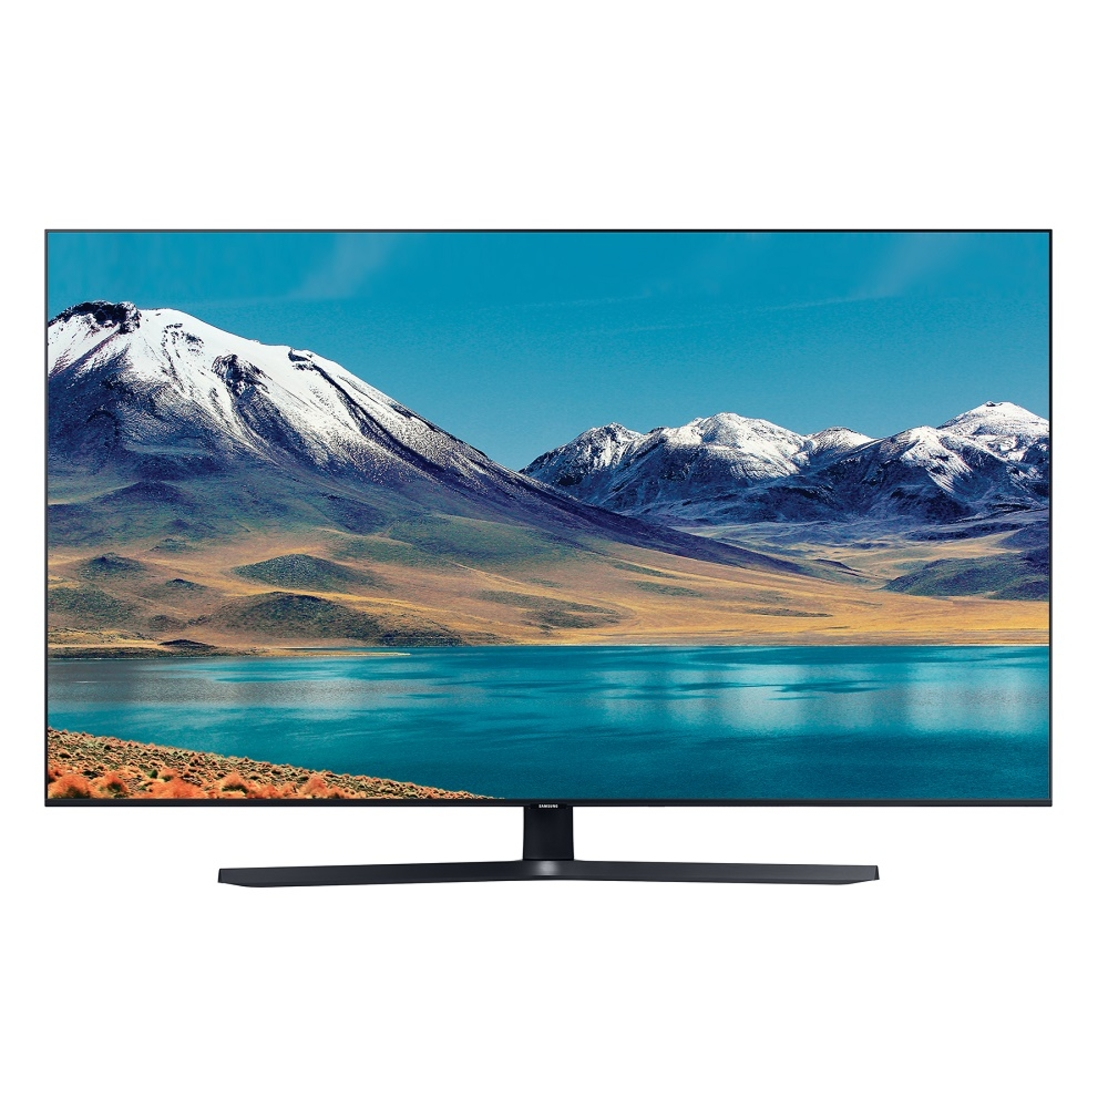 TU8500 Crystal UHD 4K Smart TV (2020)  UA50TU8500JXZK